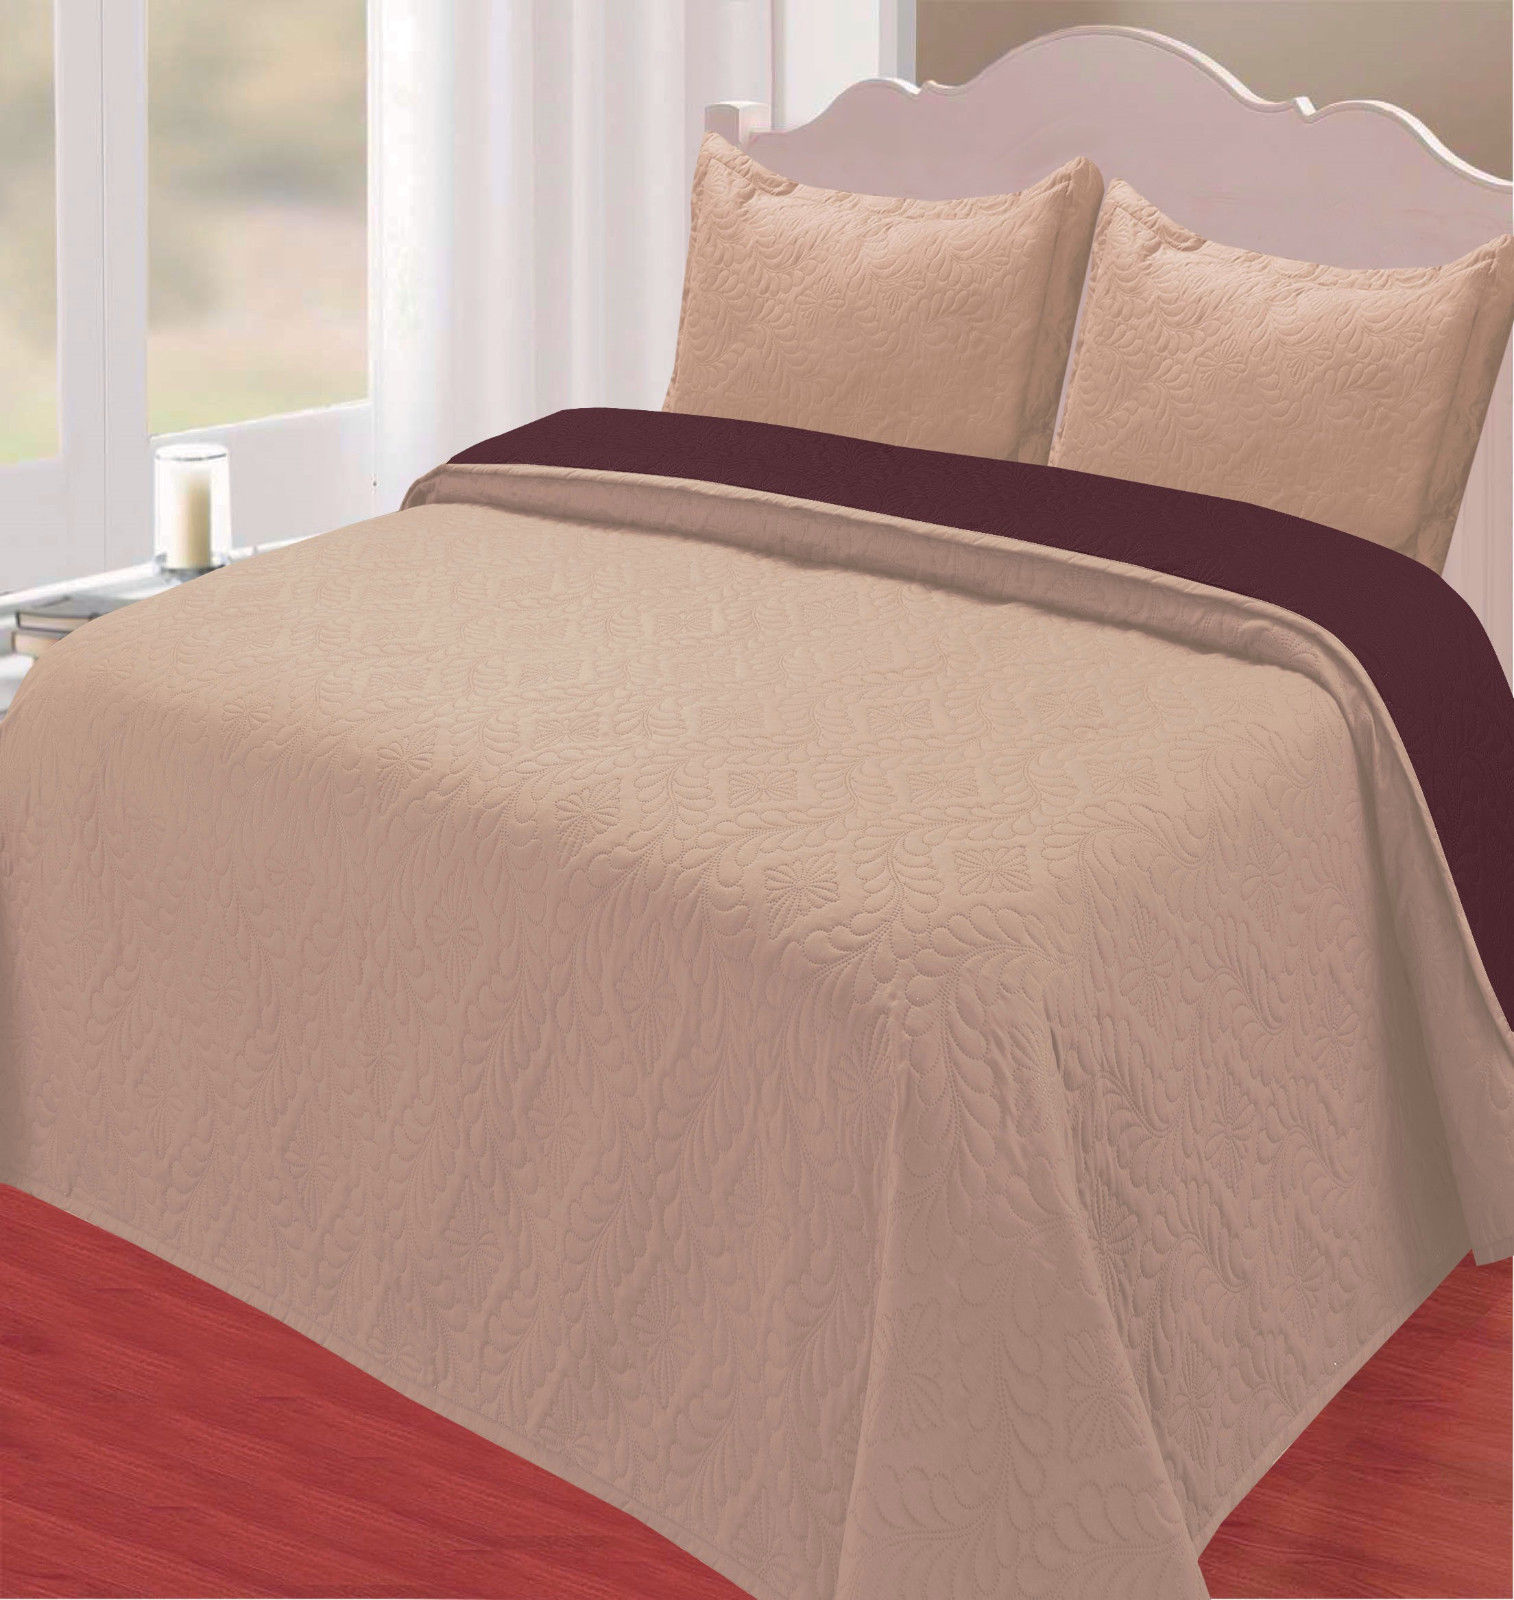 ZULMA KING TAUPE 3 Piece Reversible Solid Floral Swirl Pattern Stitched Bedding Coverlet... by